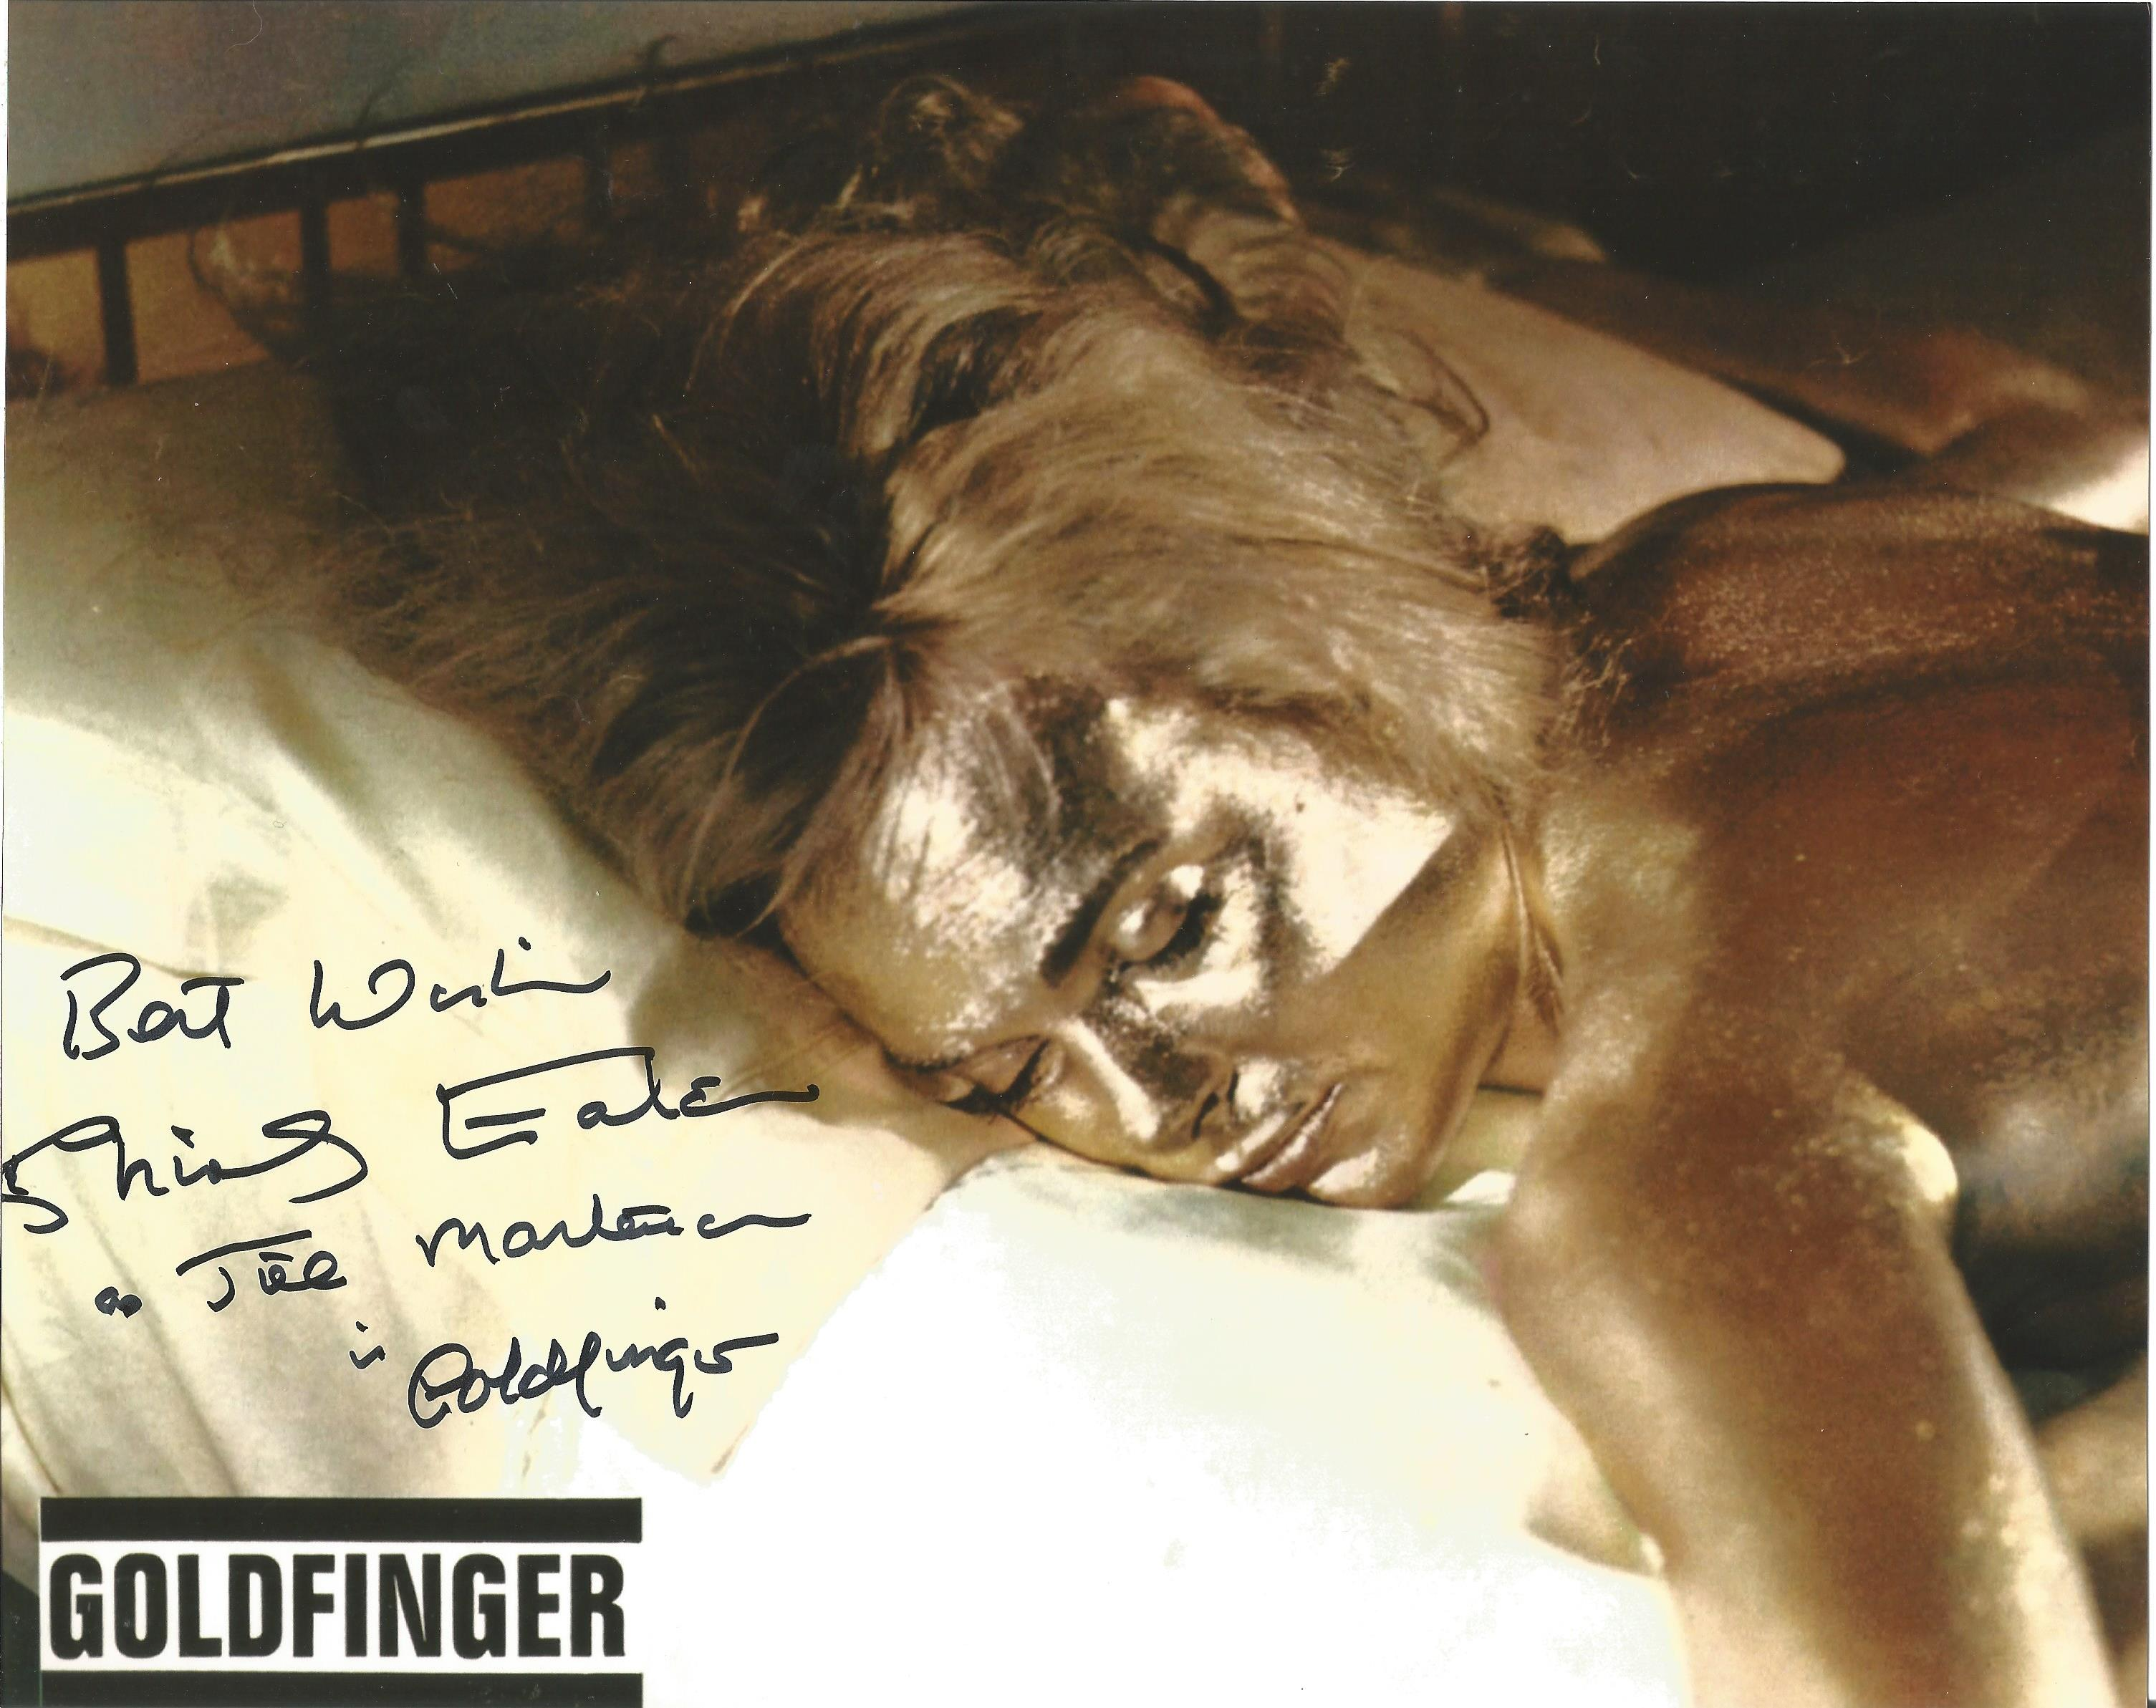 Actress Shirley Eaton 10x8 signed colour photo Goldfinger image. Shirley Eaton is an English